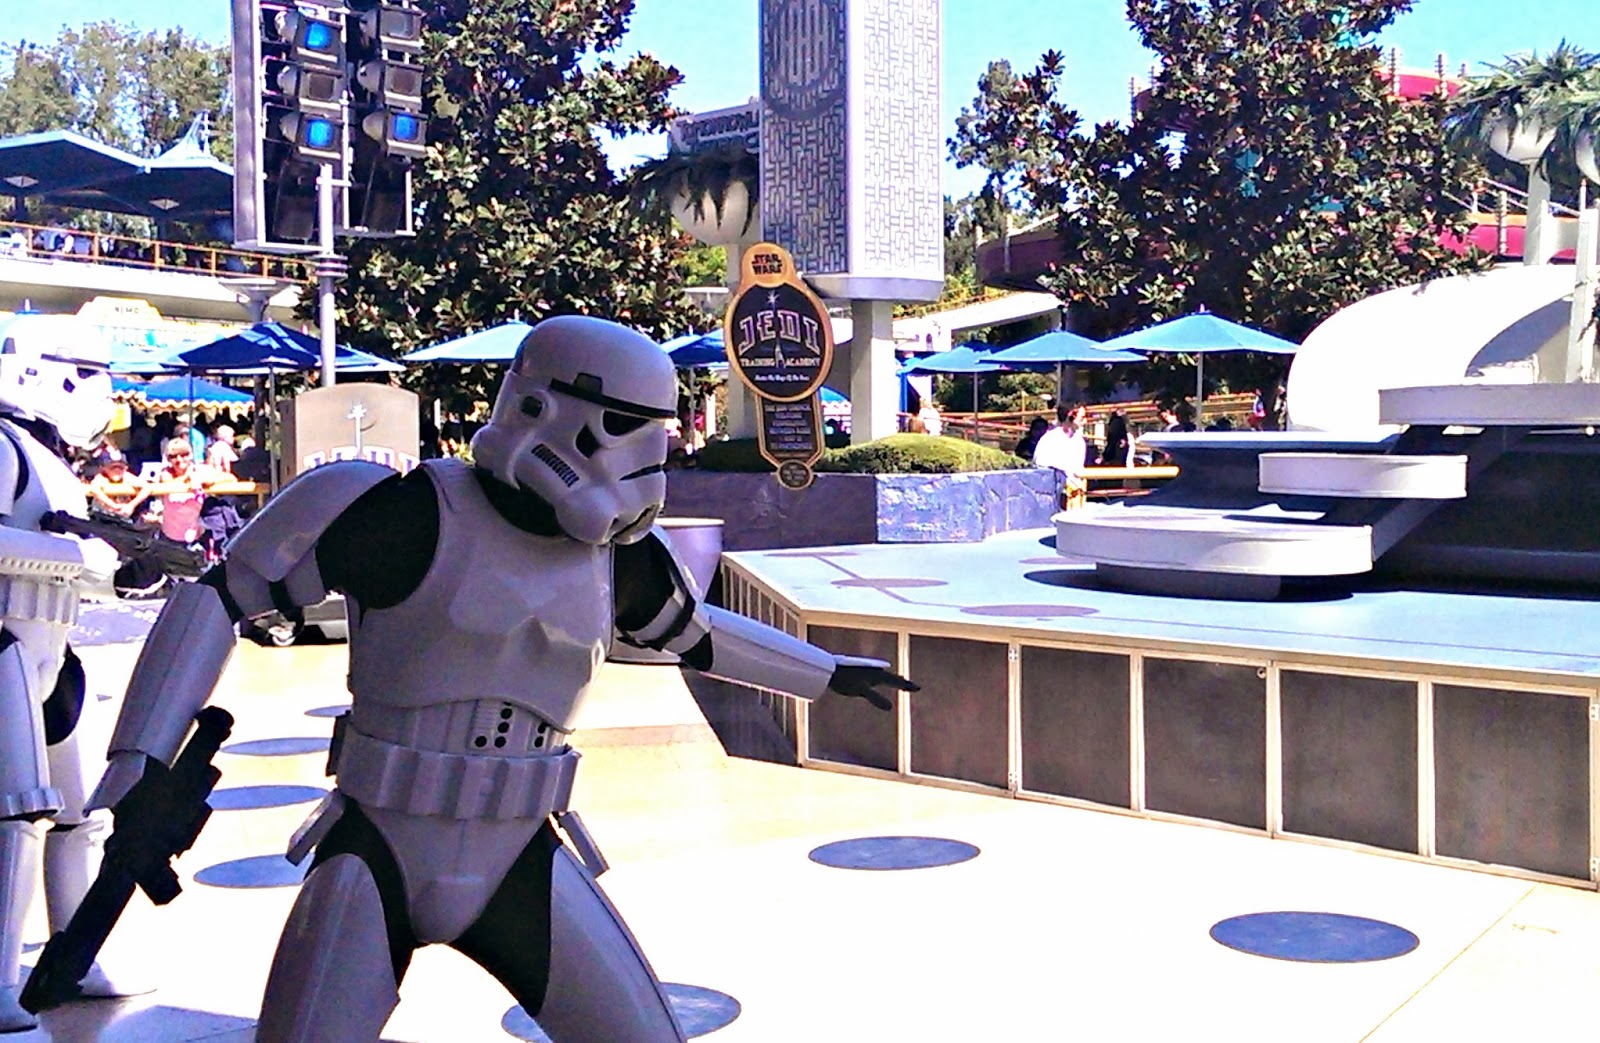 Star Wars Jedi Training Academy at Disneyland